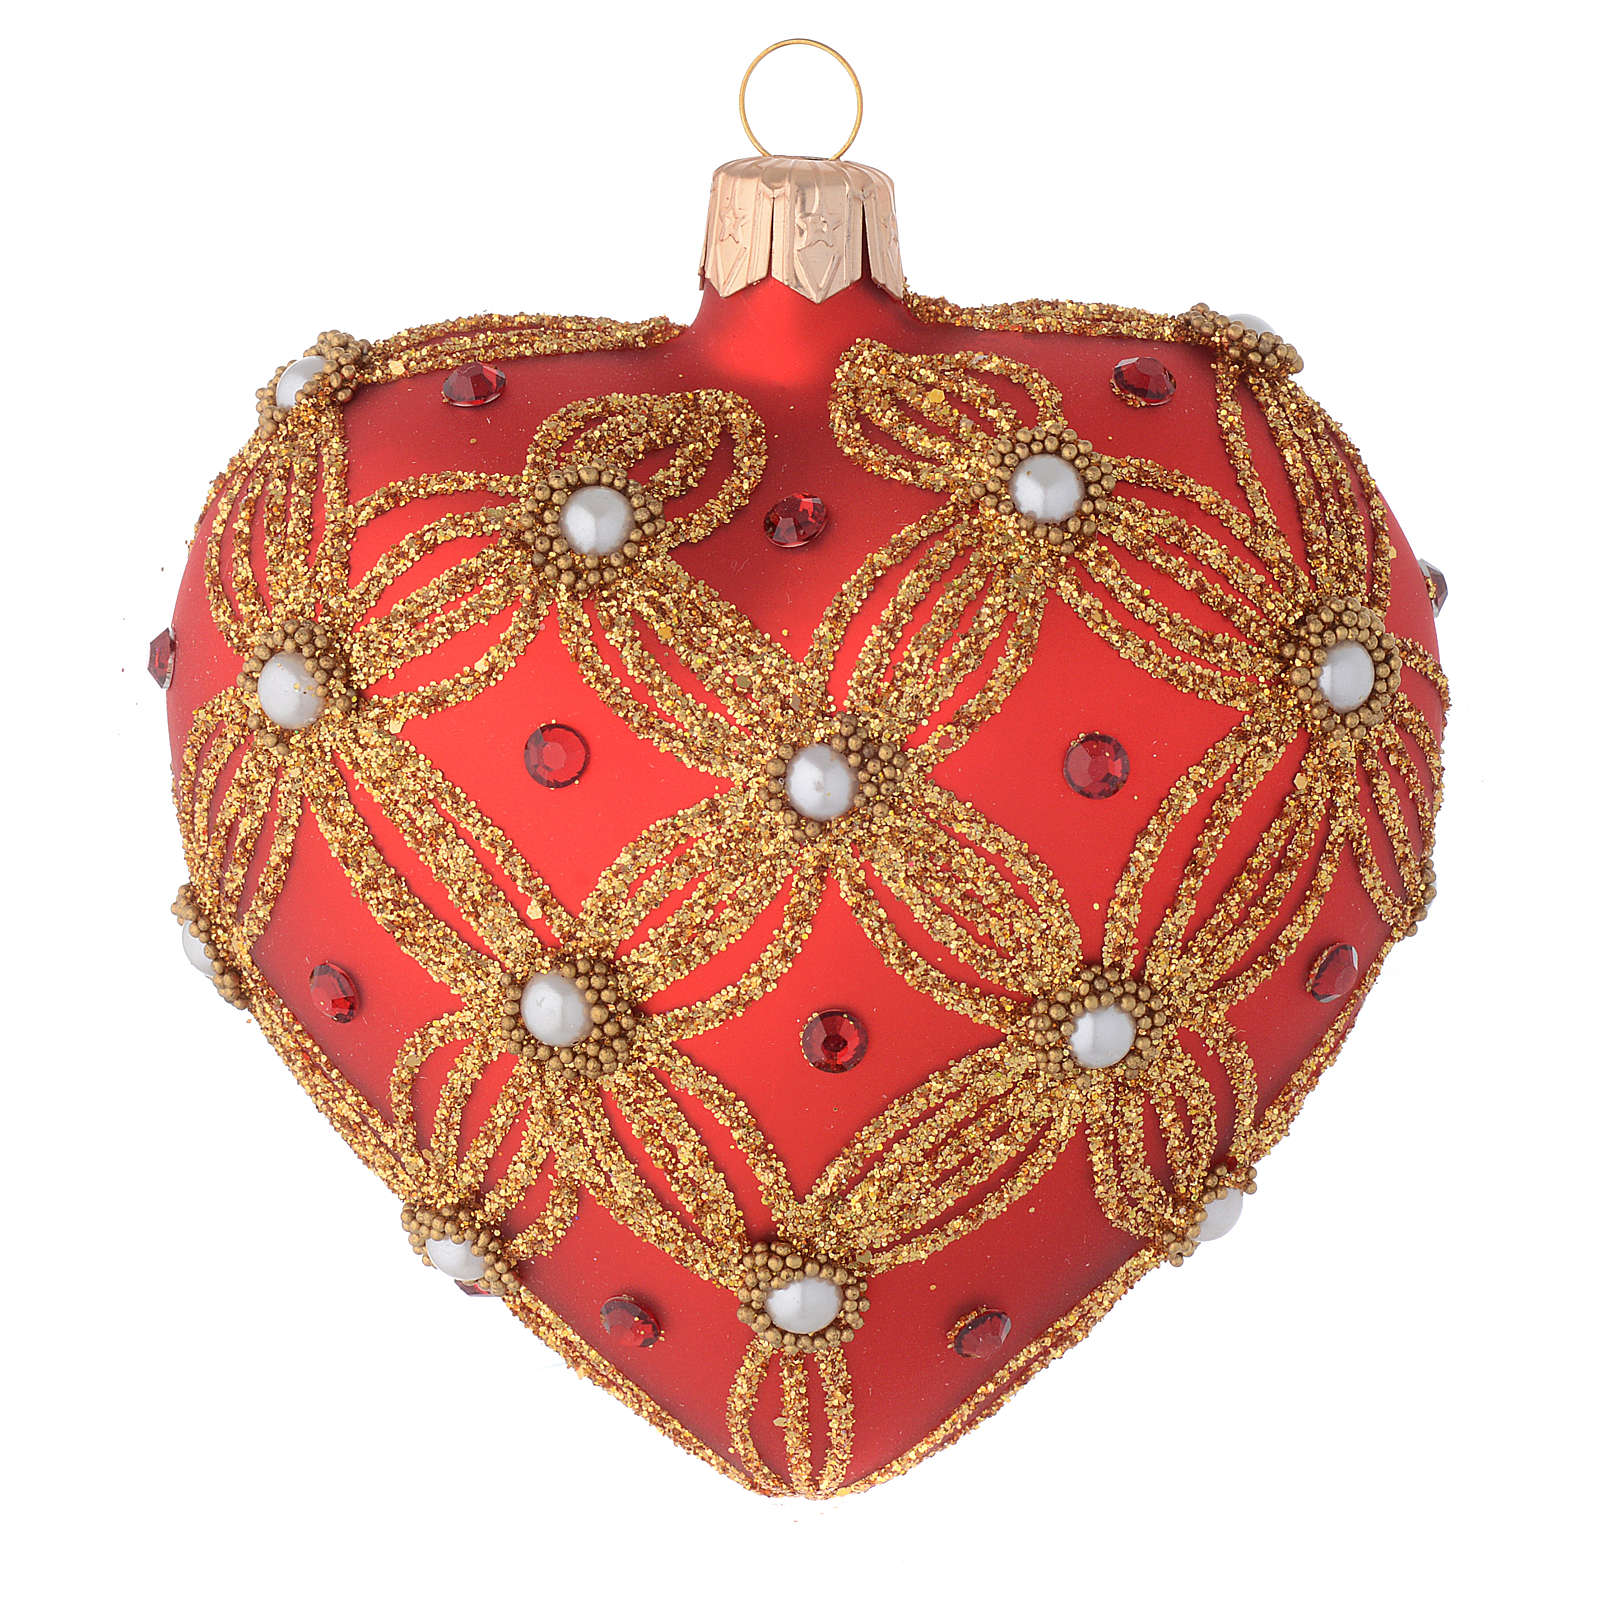 Heart Shaped bauble in red and gold blown glass with pearls 100mm 4